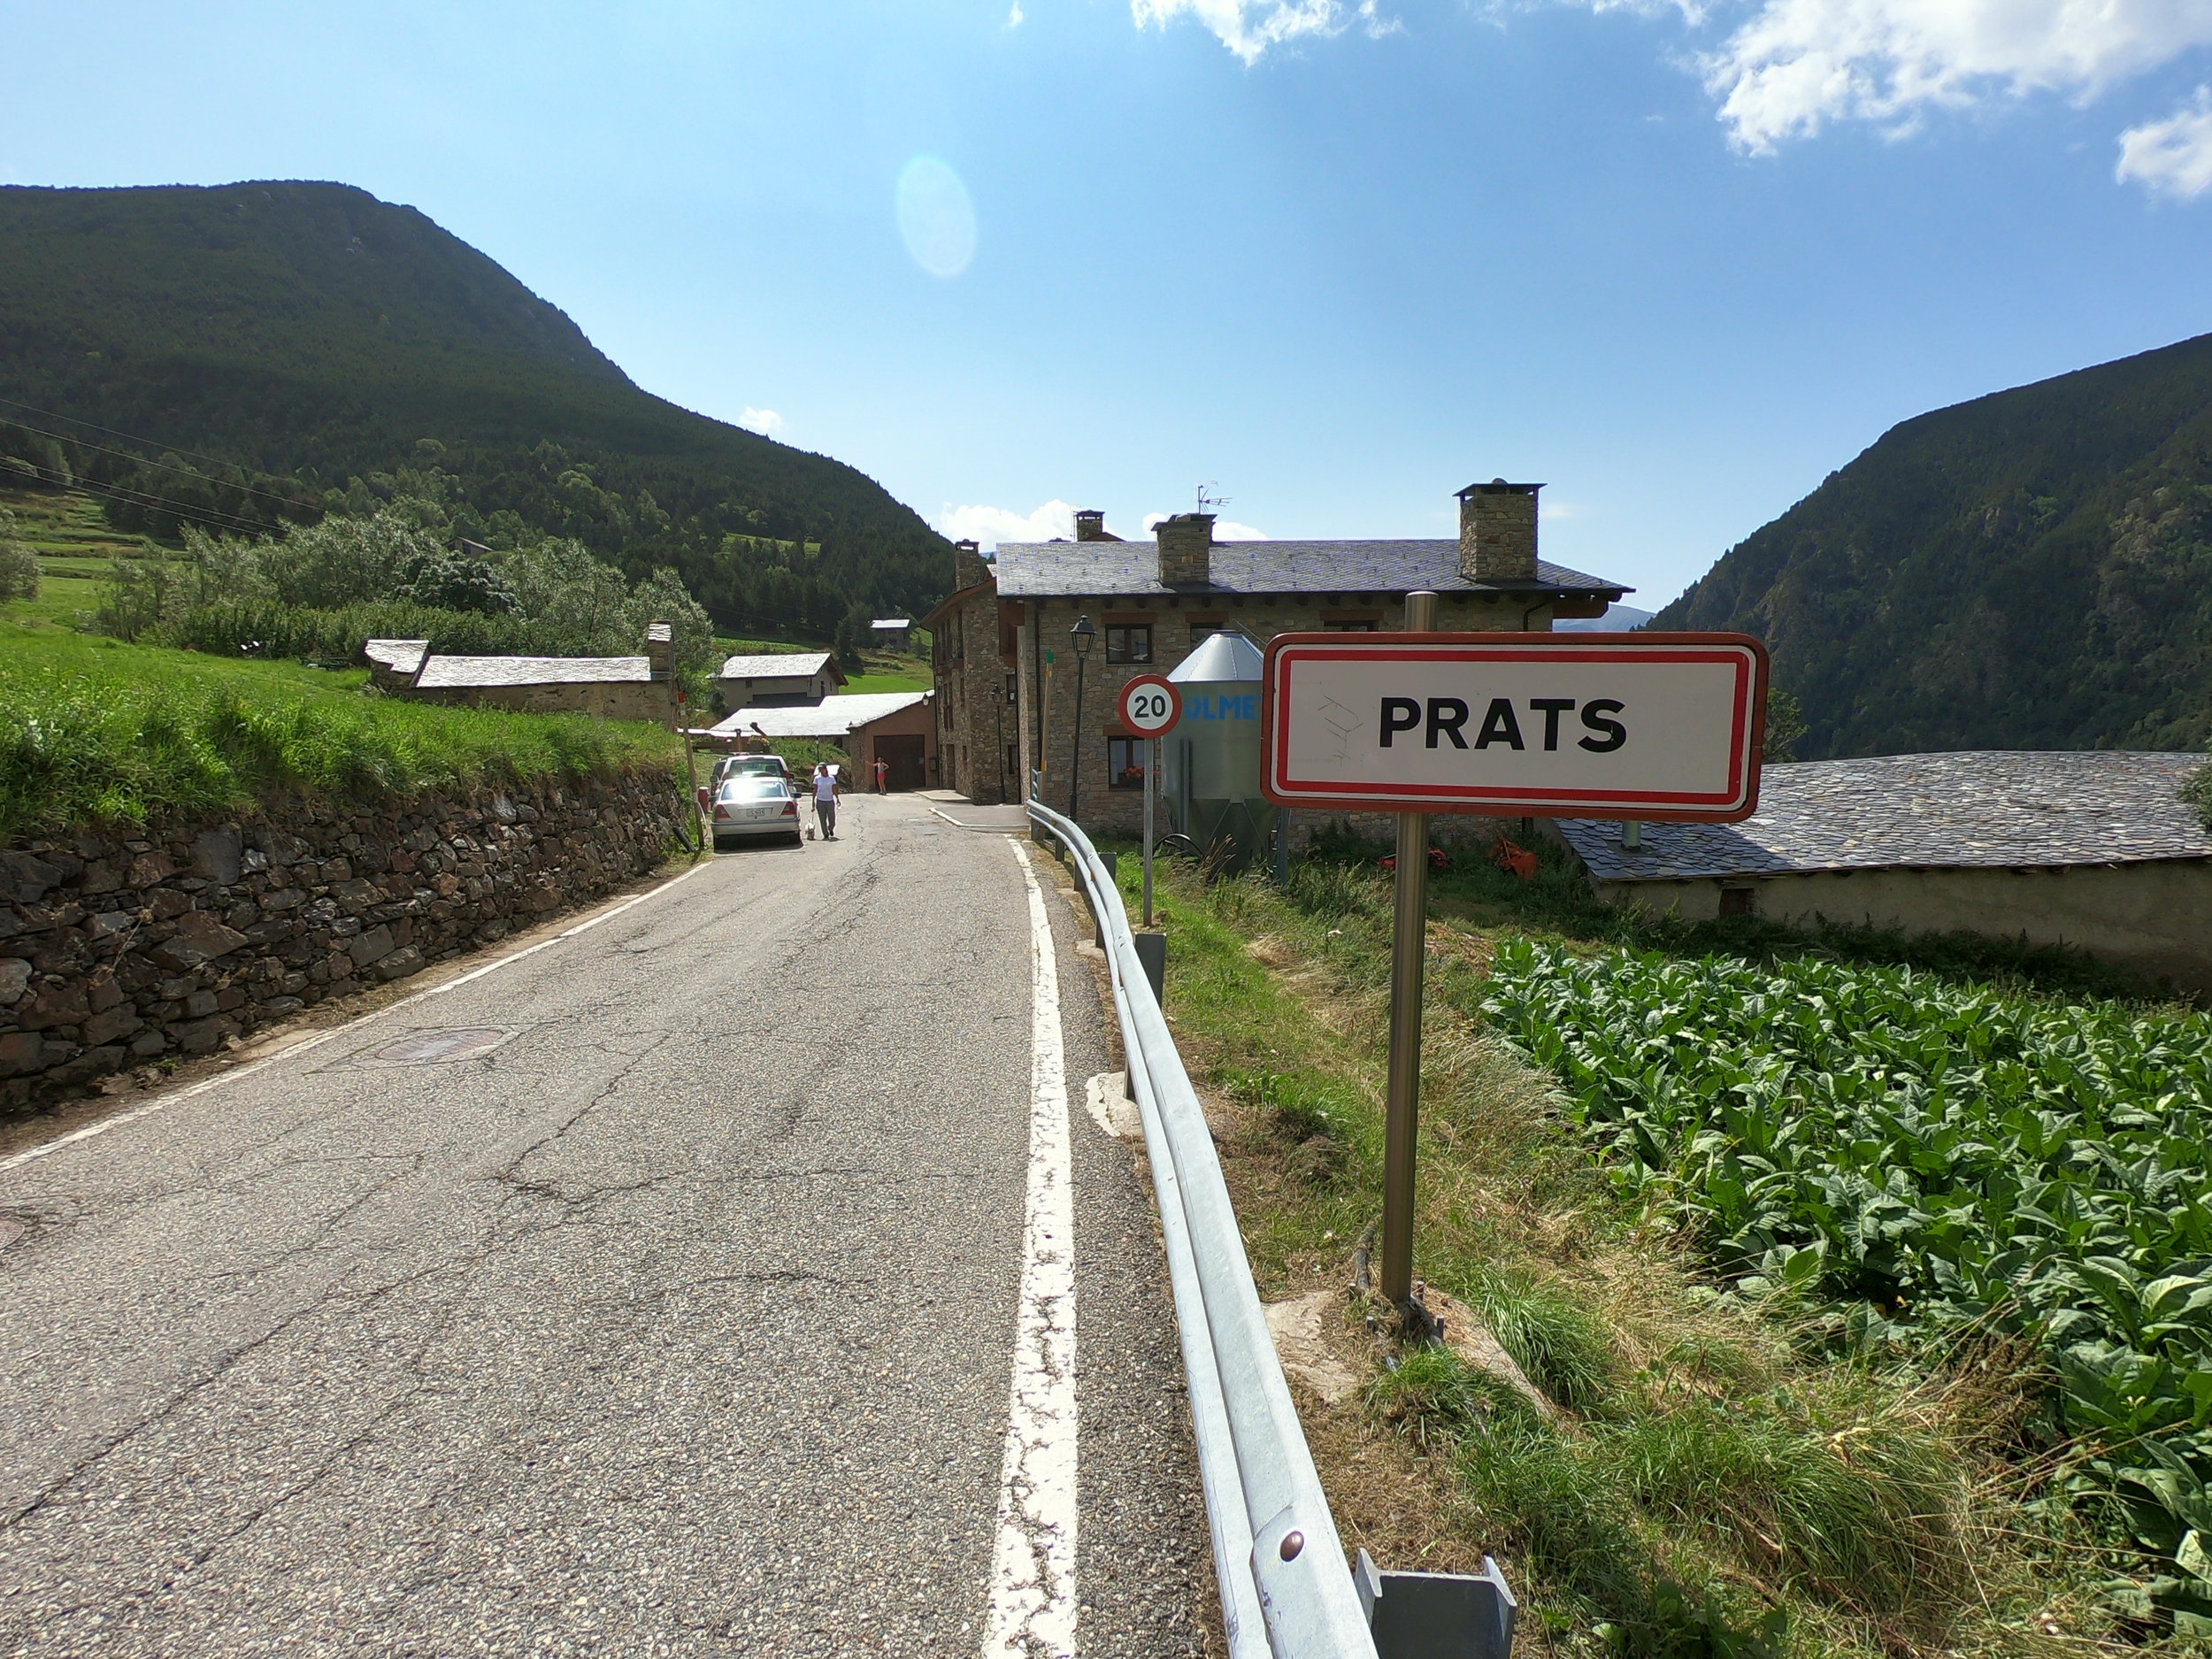 The race goes through the village of Prats. I'm pretty sure there will not be cars parked on the side of the road on race day.